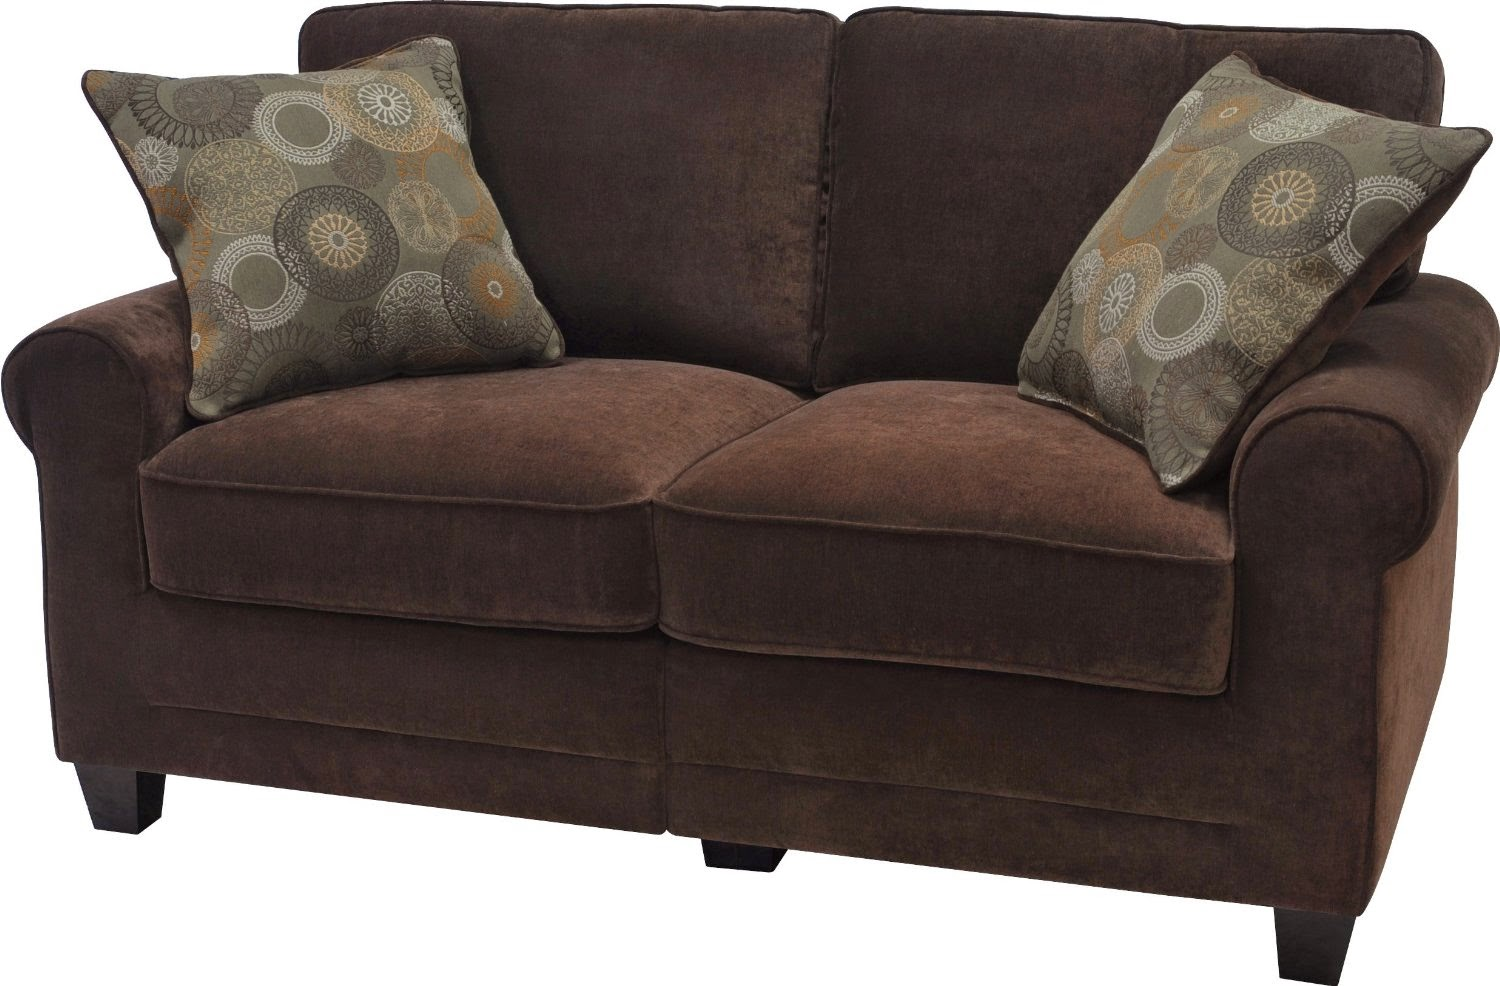 Brown Vine Leather Sofa Bed Seattle Couch